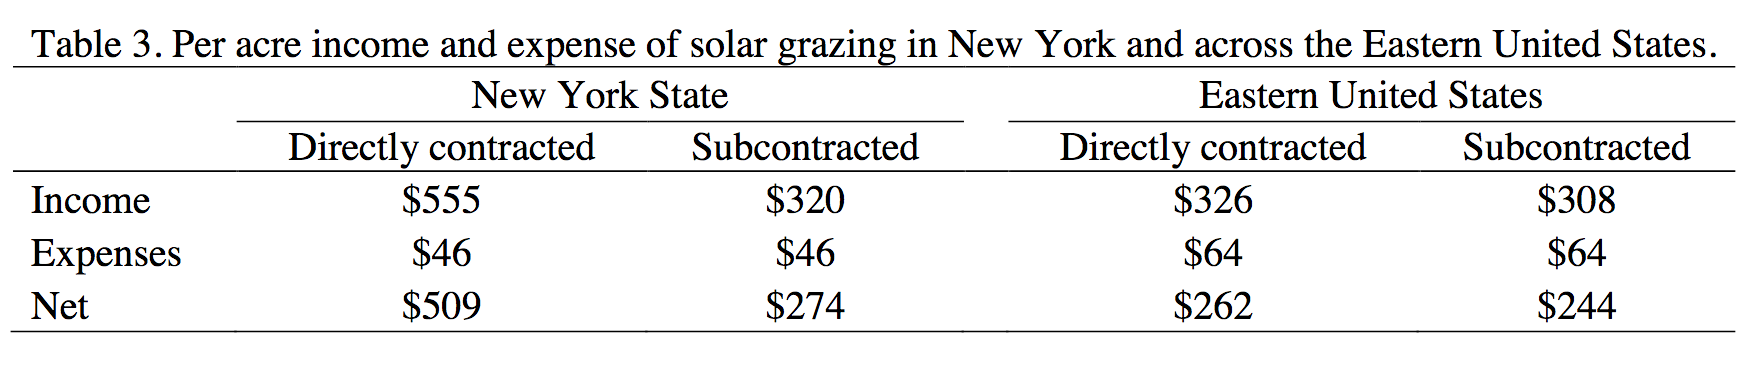 Table excerpted from the 2018 Atkinson Center report.In a surveyofsheep farmersgrazingsolarsites, 14 total sheep farms responded,and of that4werein New YorkState.Survey respondents reported atotal of 3,503 acres of utilitysolargrazedin theeasternUS,with79 acres inNYS.